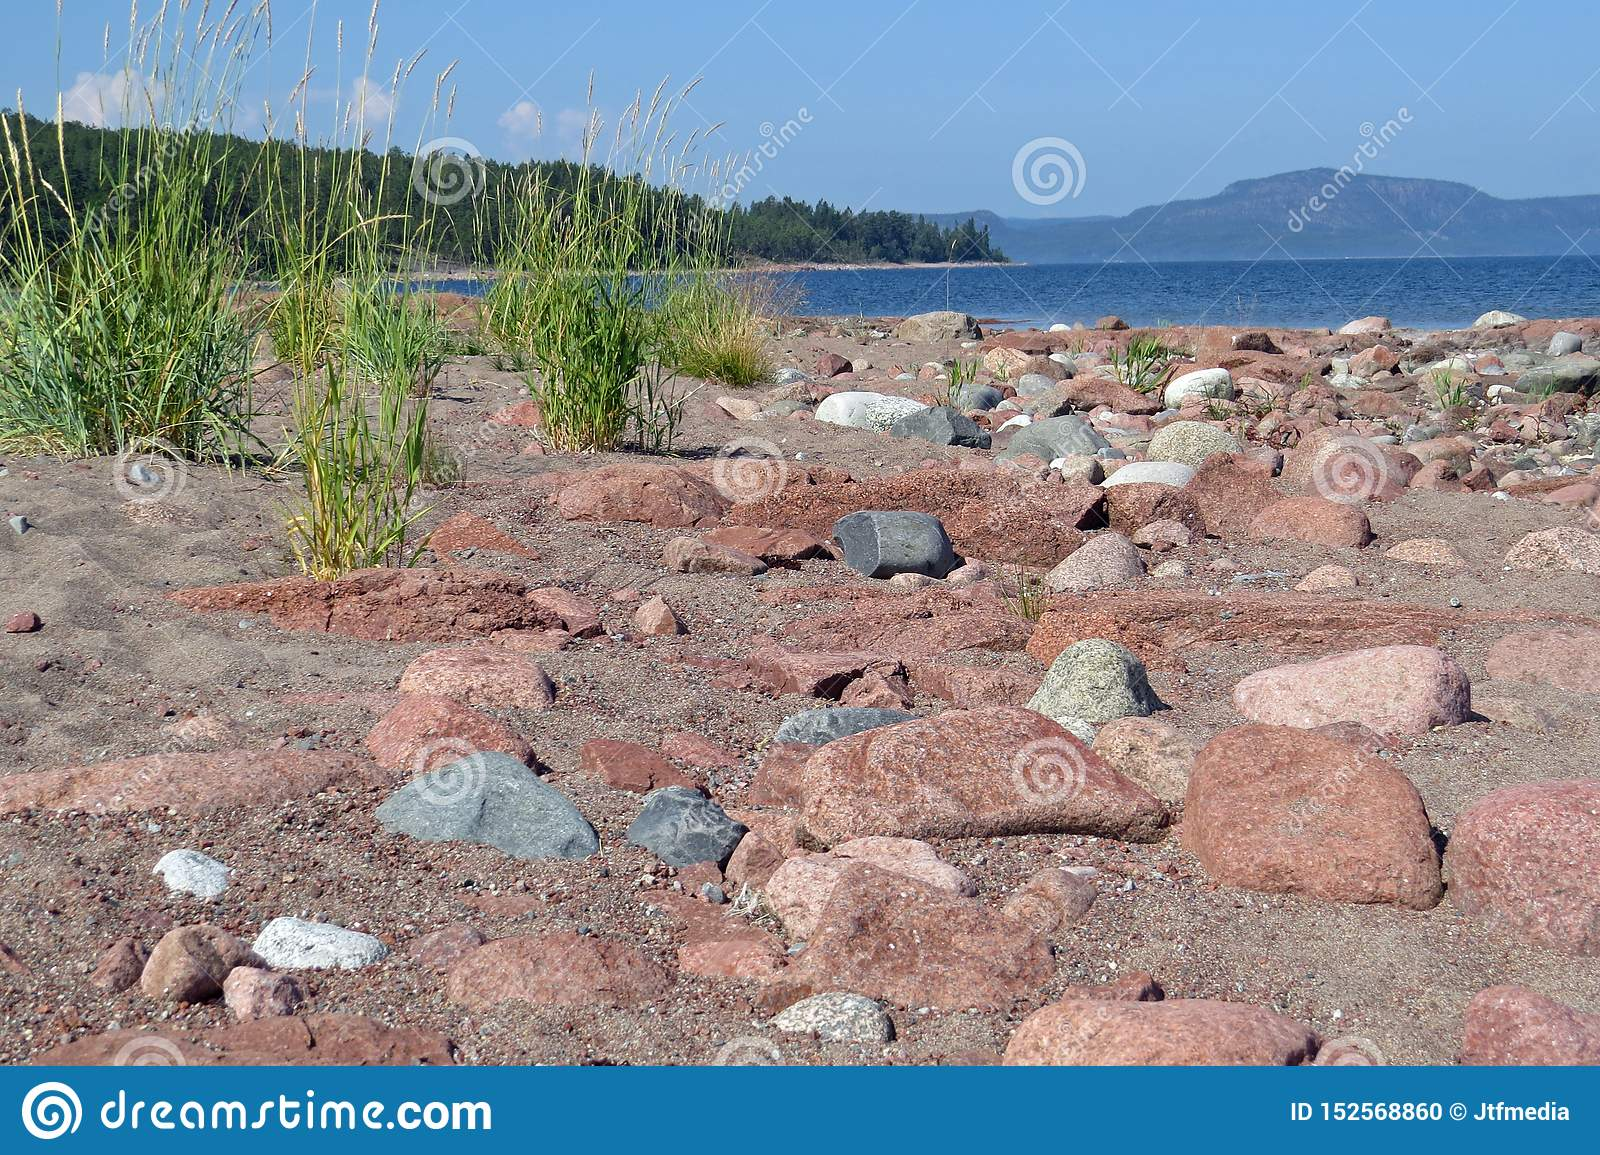 Little rocks, pebbles and sea grass on the beach of Storsand, Gulf of Bothnia, Sweden, Europe